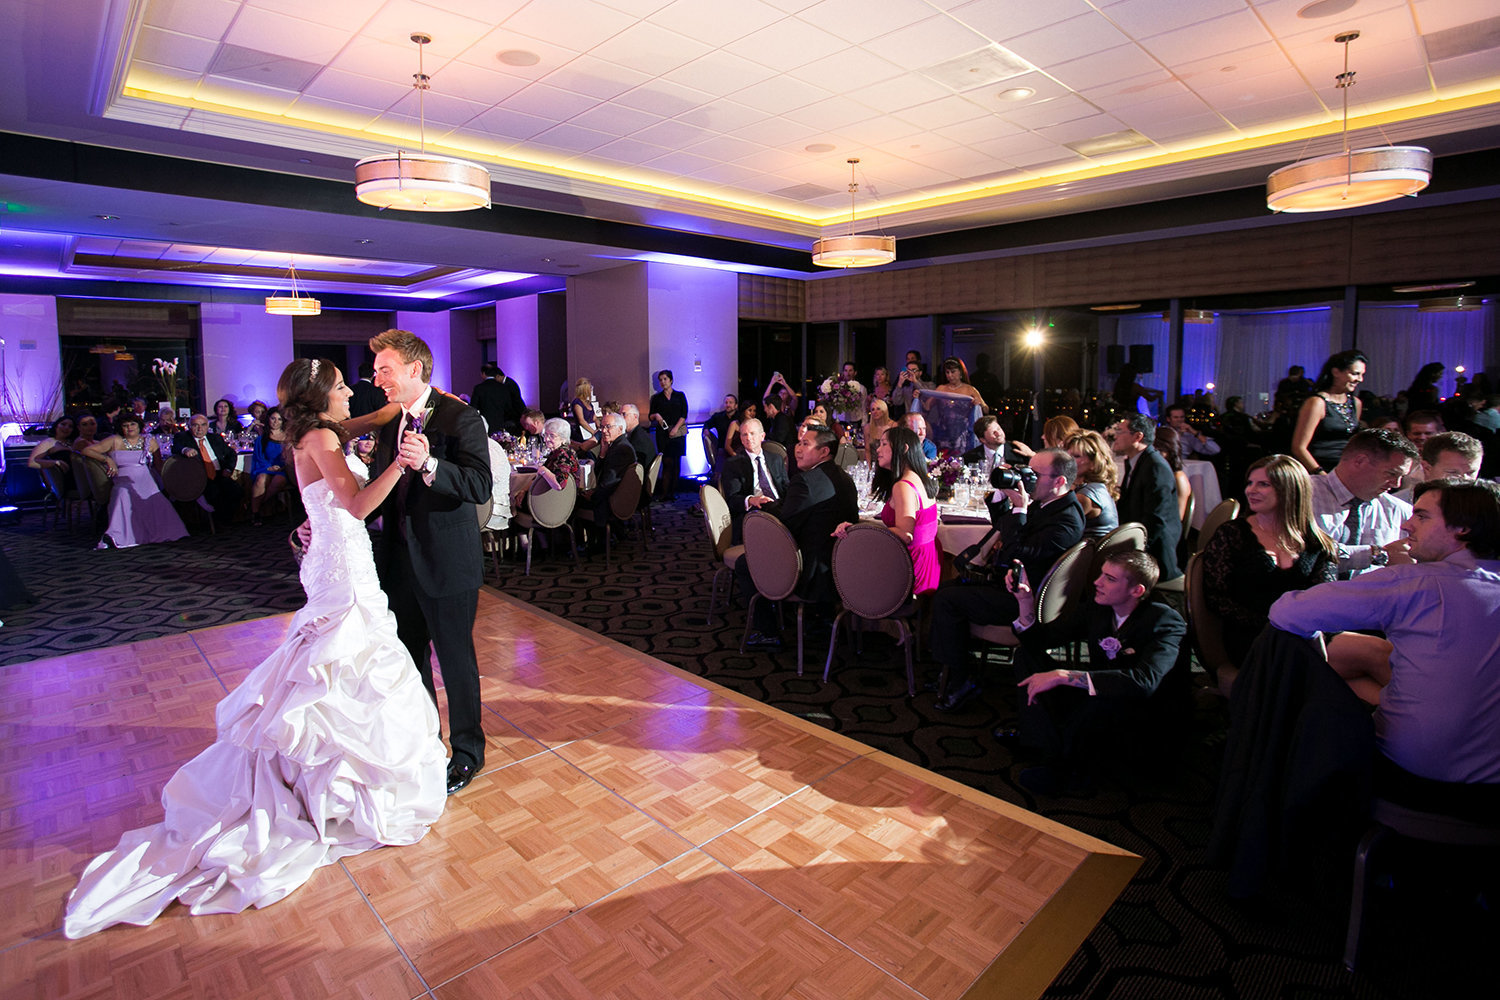 The first dance as a large crowd of wedding guests watch at the University Club on Symphony Tower | Reception Uplighting